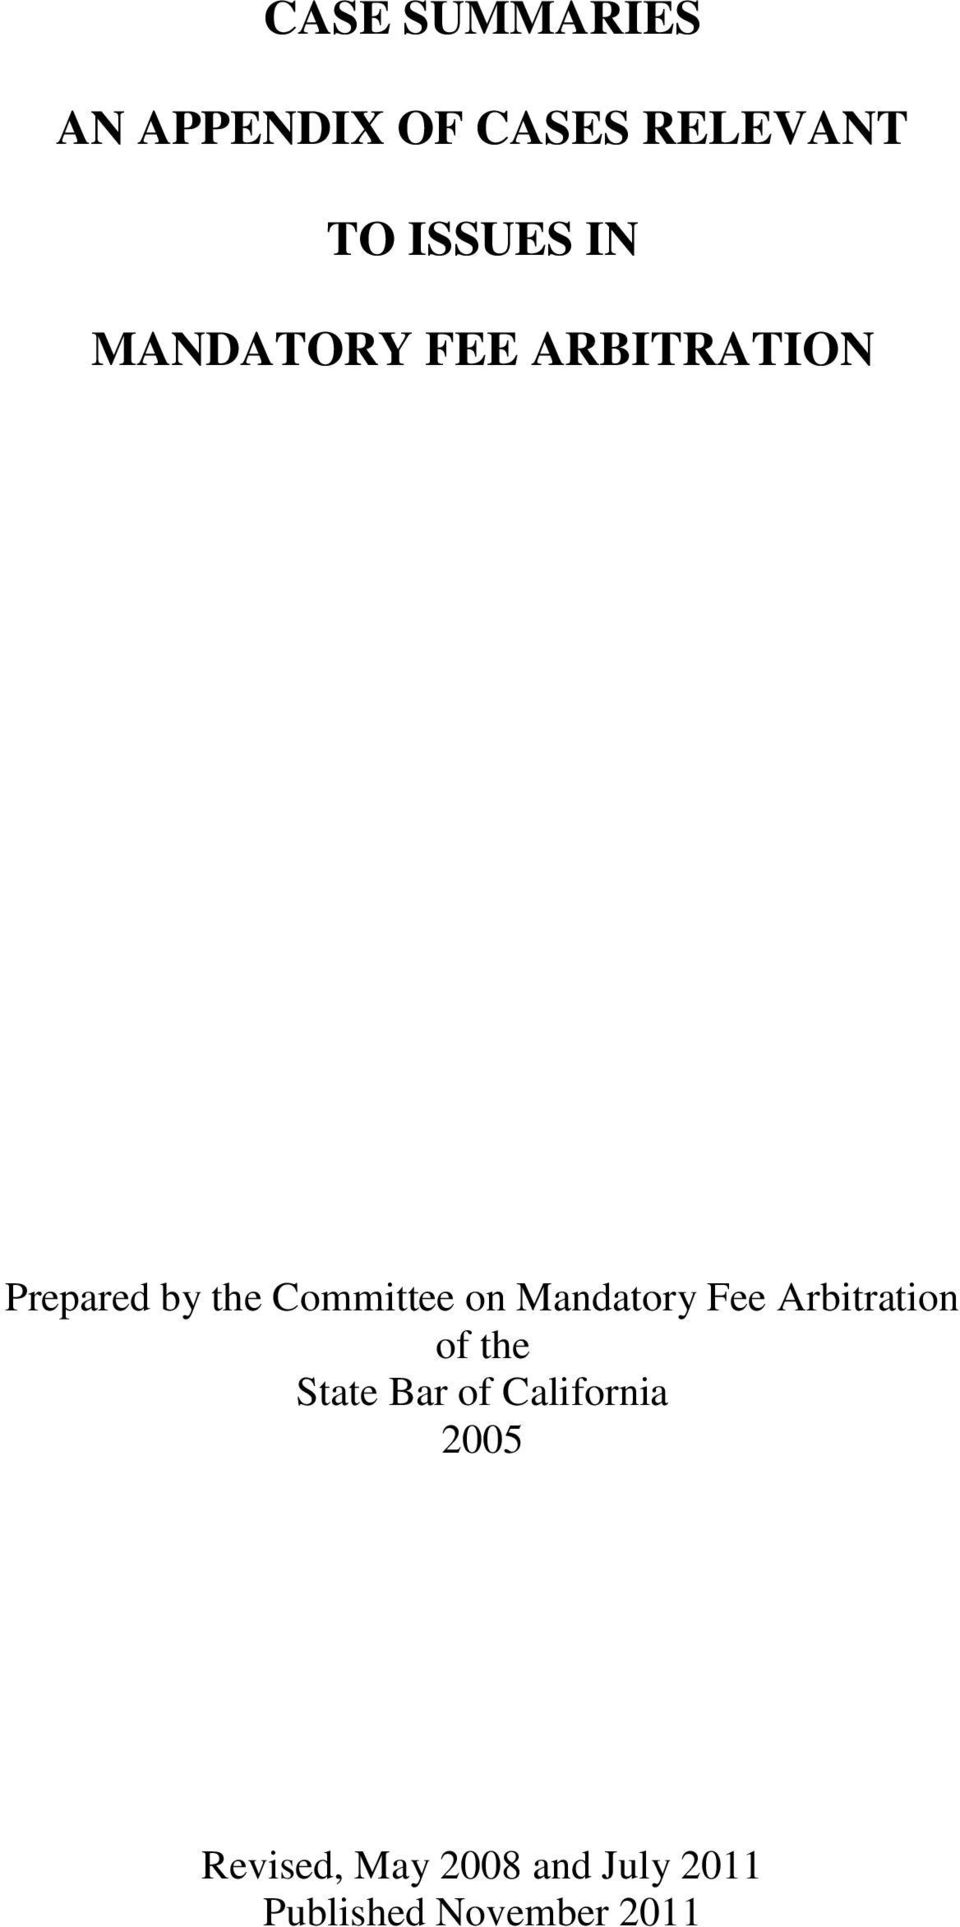 Mandatory Fee Arbitration of the State Bar of California